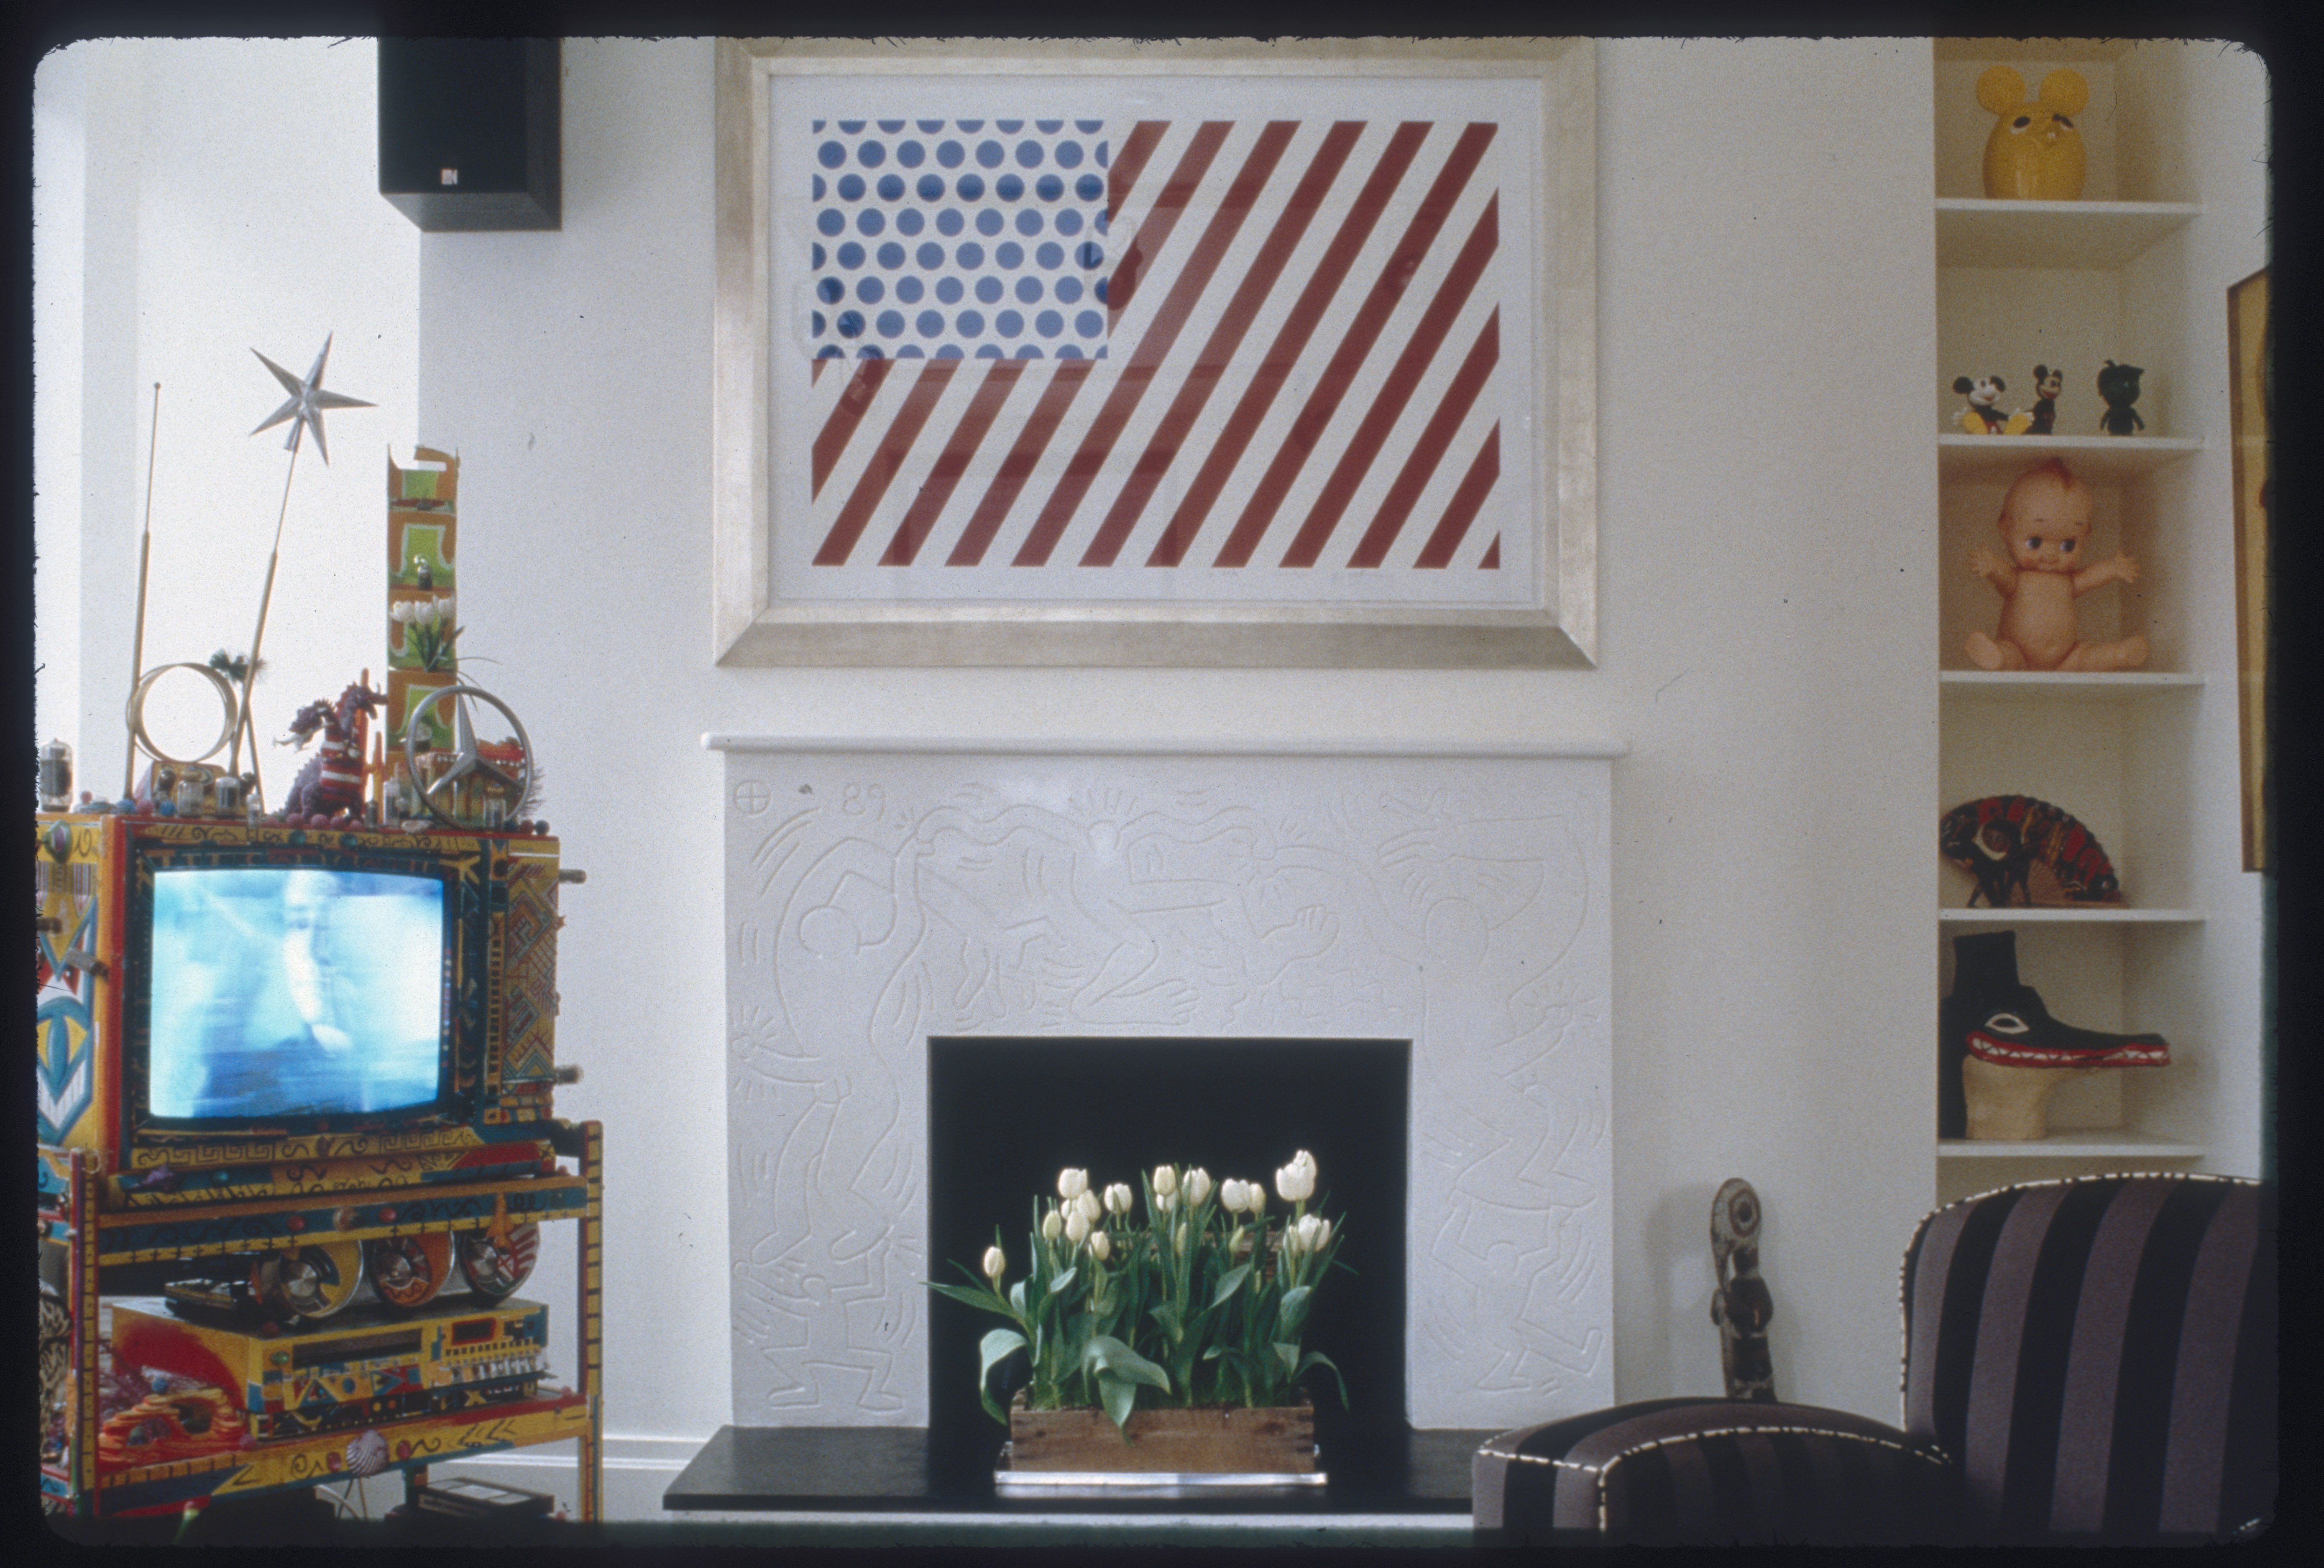 Roy Lichtenstein Forms in Space at Keith Haring apartment